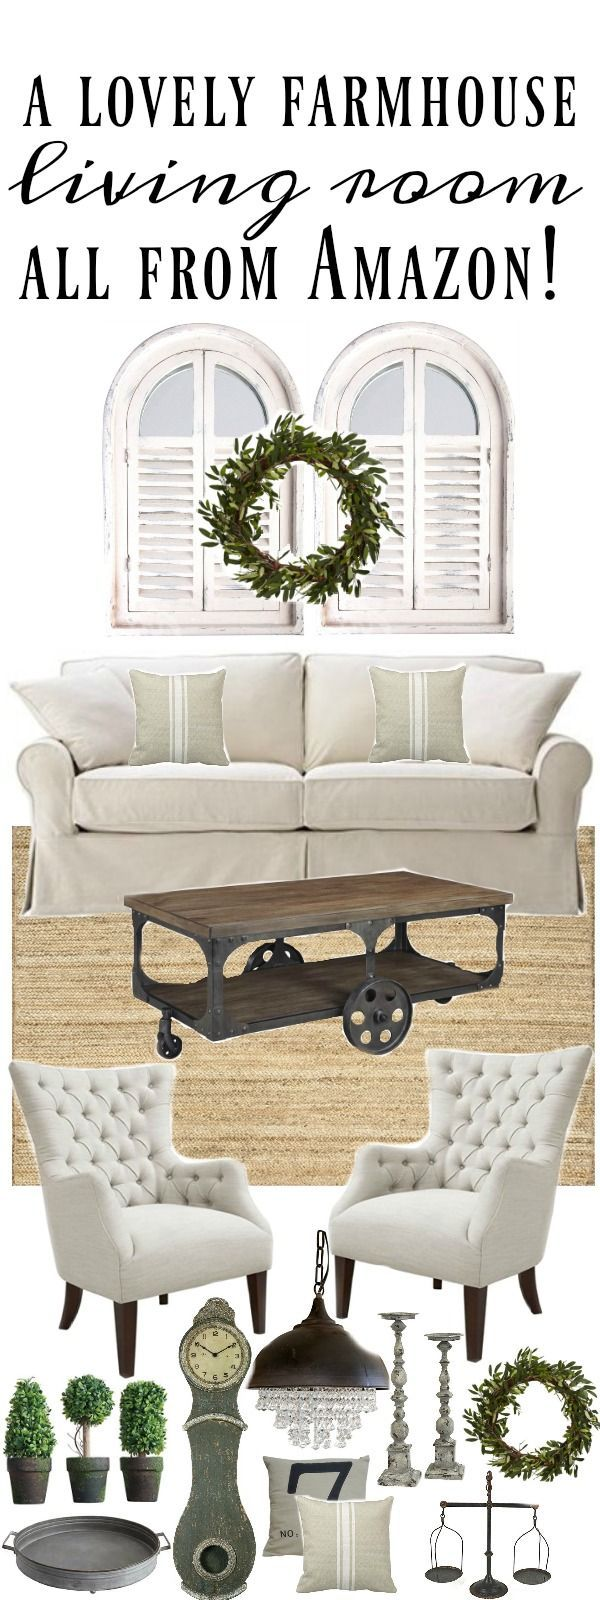 Farmhouse living room chairs - Farmhouse Living Room All From Amazon